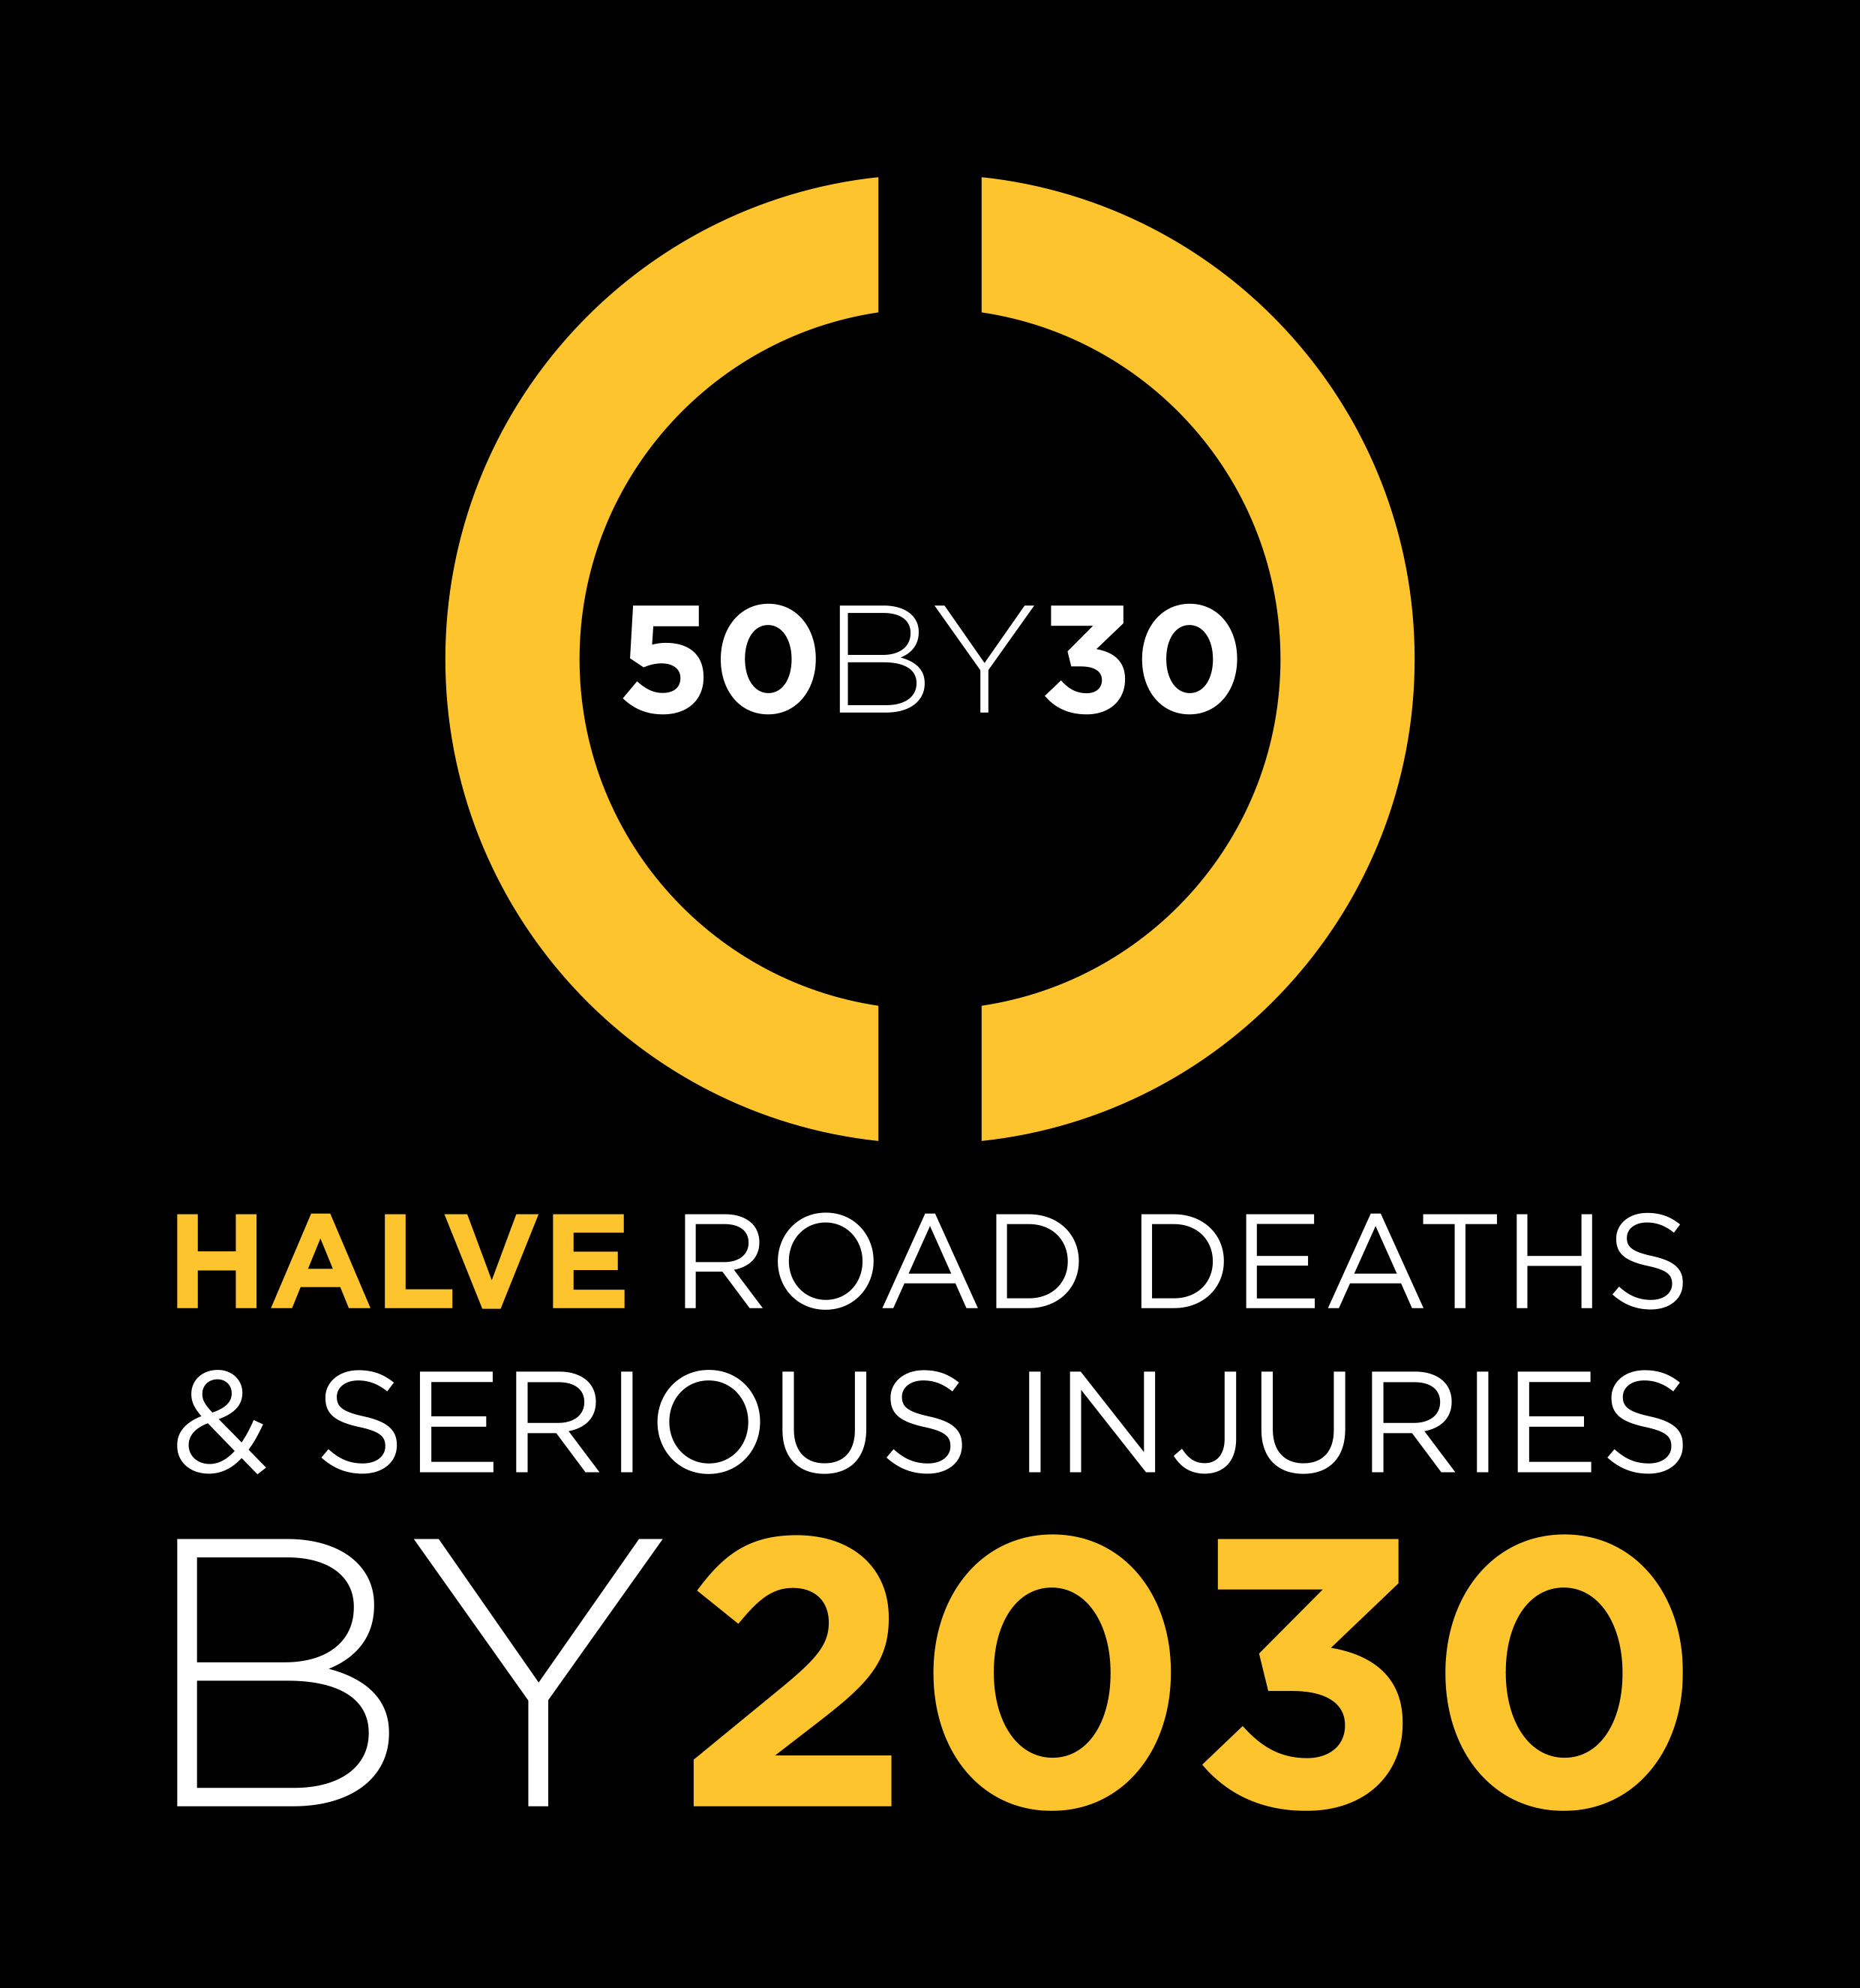 #50by30 - Our umbrella organisation the Towards Zero Foundation sets a new target for a decade of SDG action for road safety